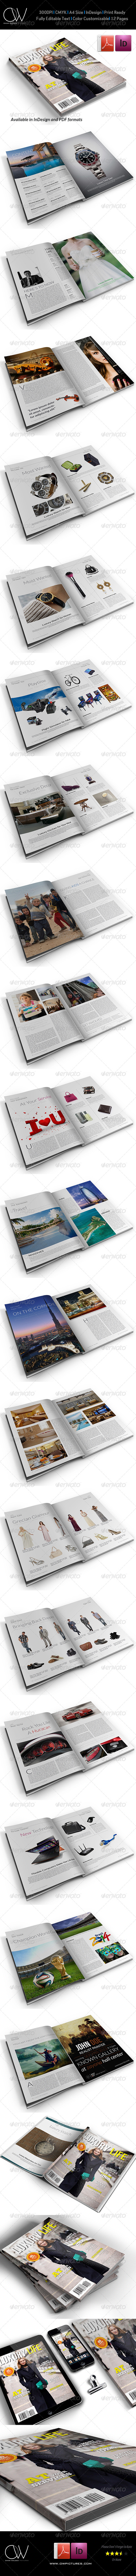 GraphicRiver Luxury Life Magazine Template 40 Pages 7874633